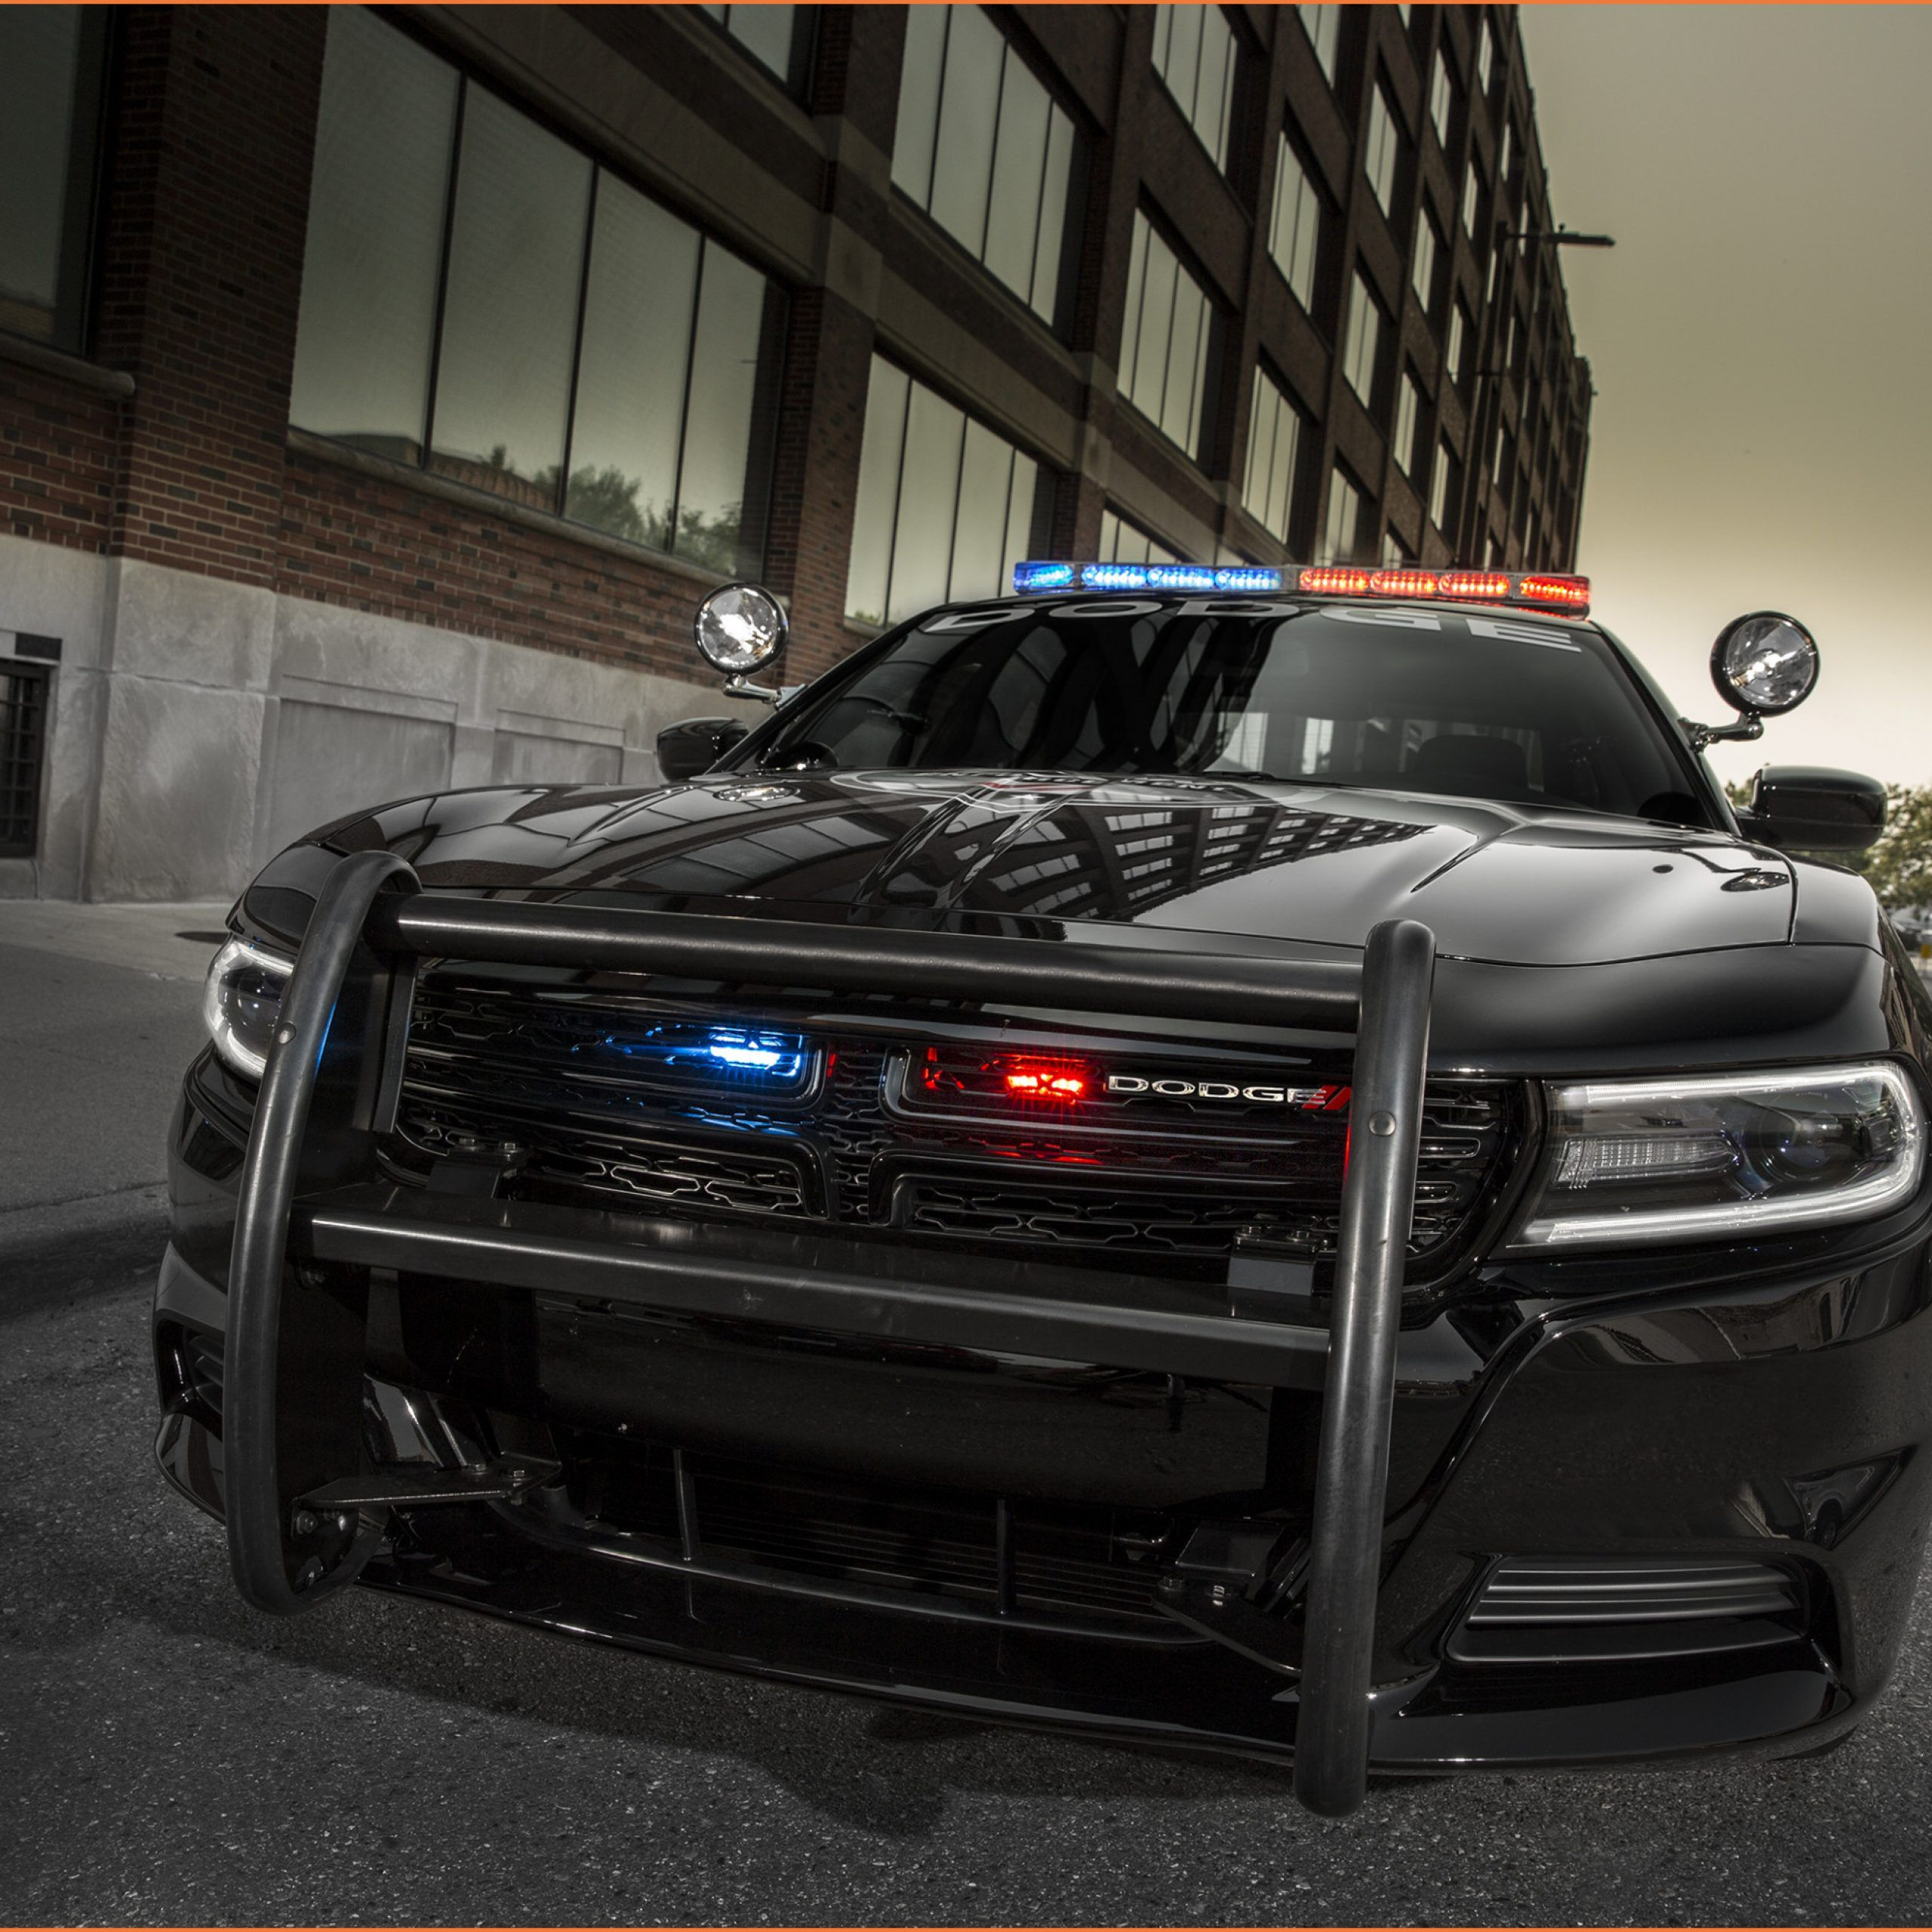 14 Disadvantages Of 14 Dodge Charger Police And How You Can Workaround It 14 Dodge Charger Police In 2020 Dodge Charger New Dodge Police Cars